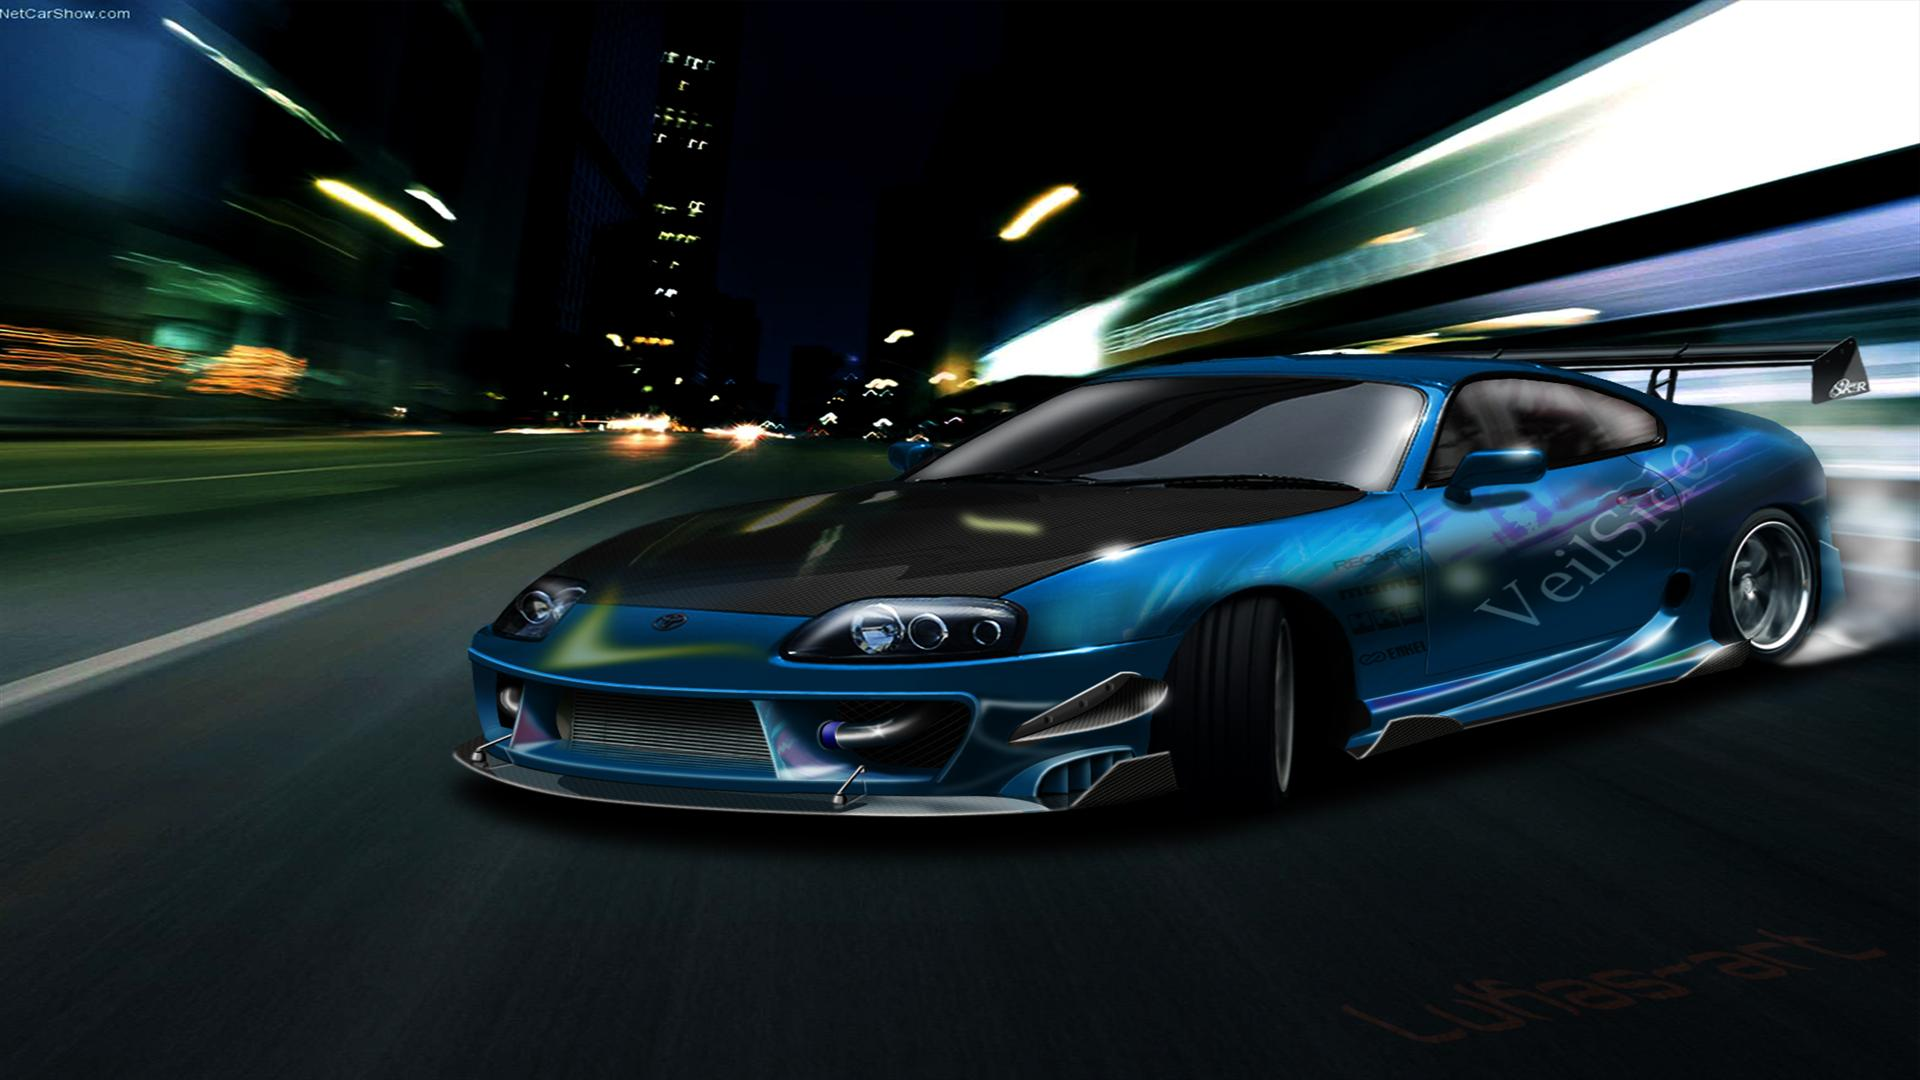 Top Toyota Supra Wallpaper 1080p HD High Resolution Image 1920x1080